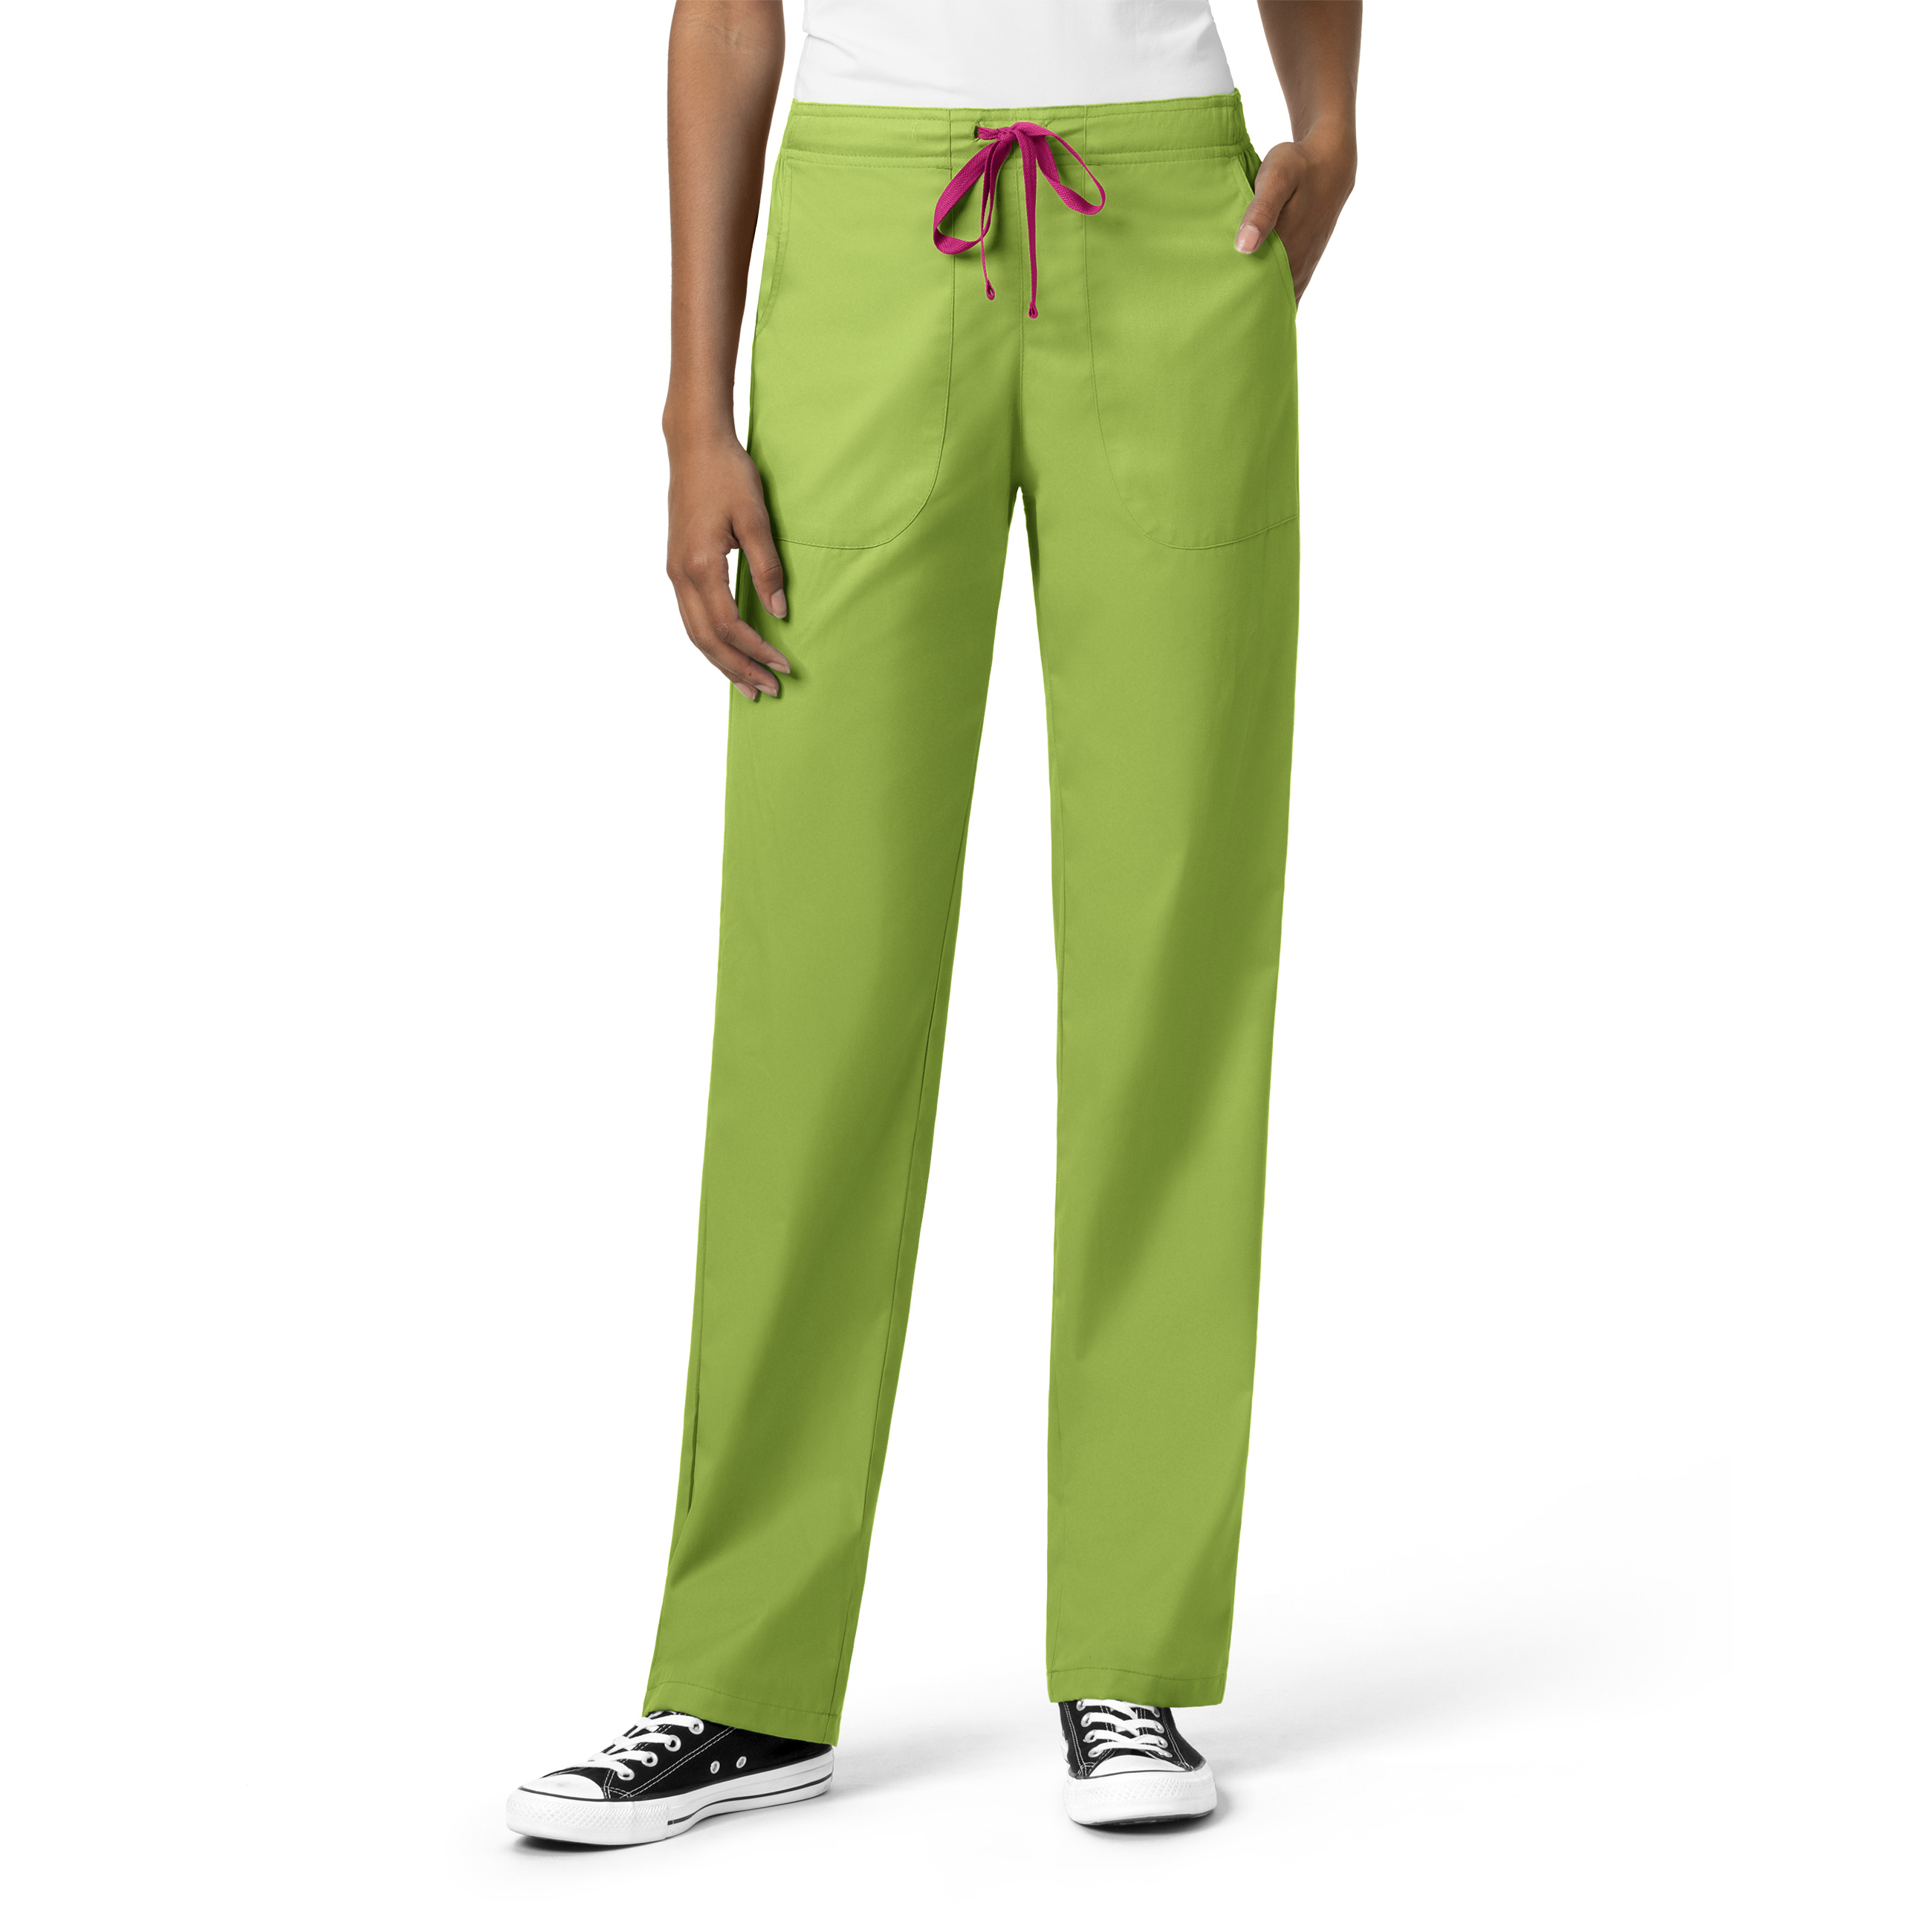 Latest Nursing Colorful Scrubs